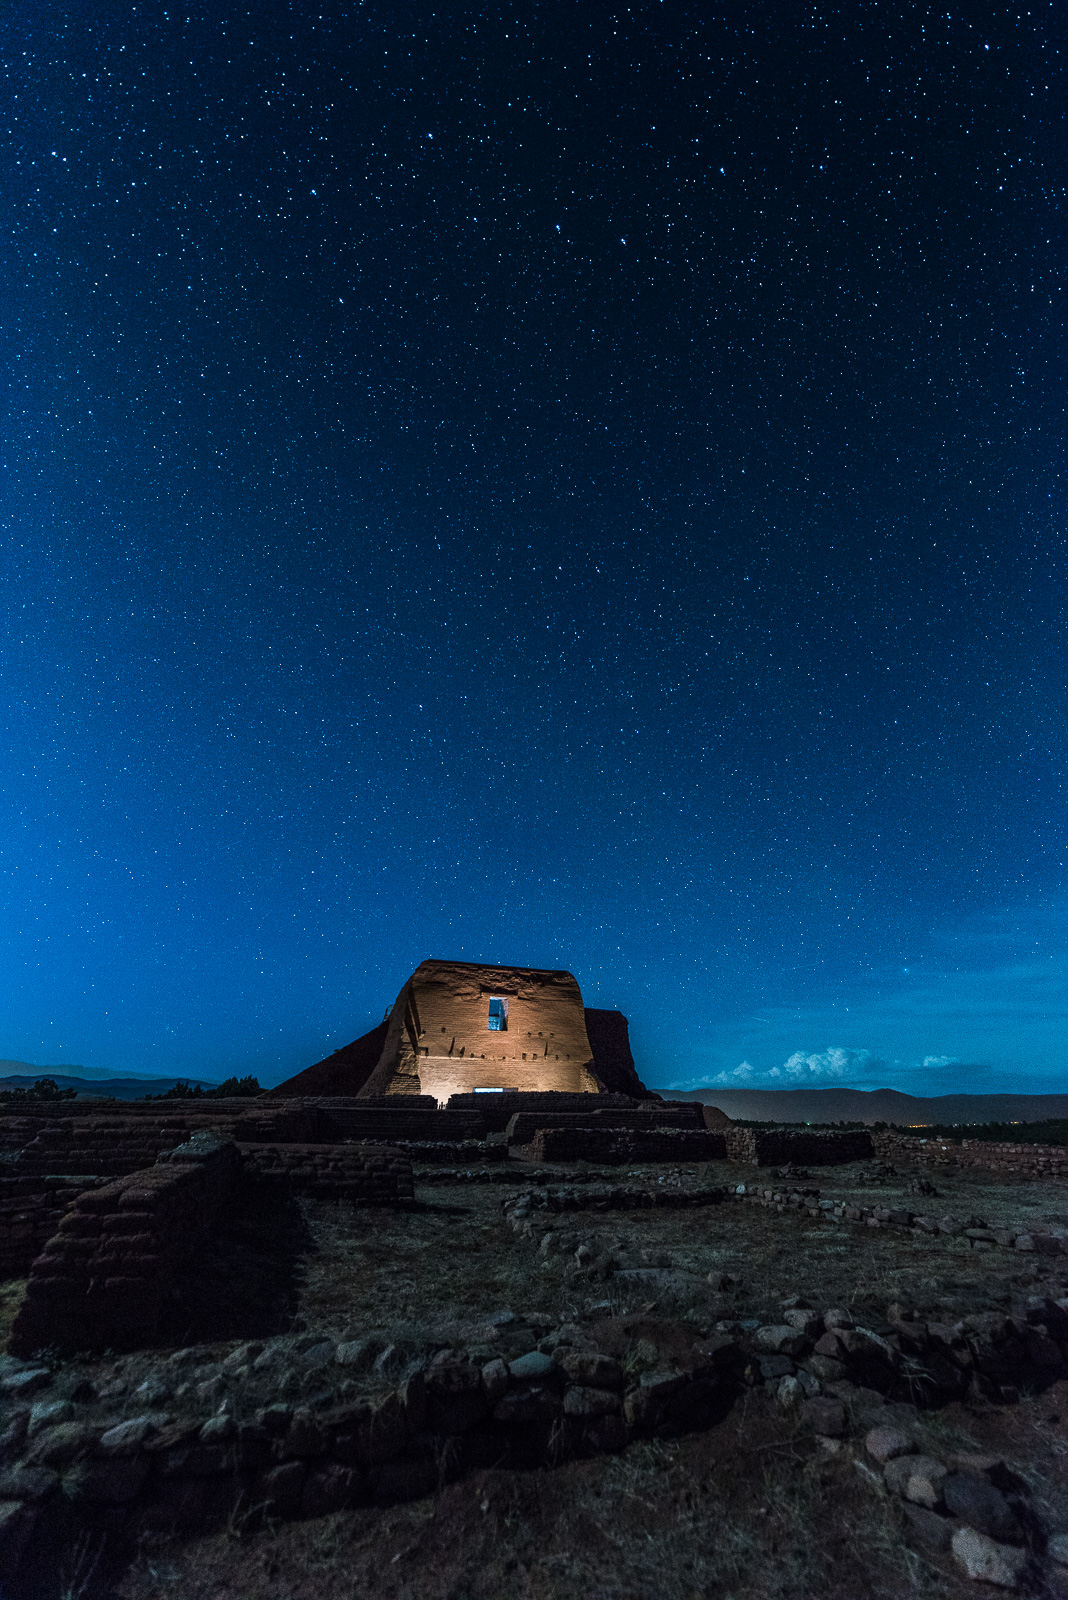 Starry Nights at Pecos in May 2019 - Pecos National Historical Park